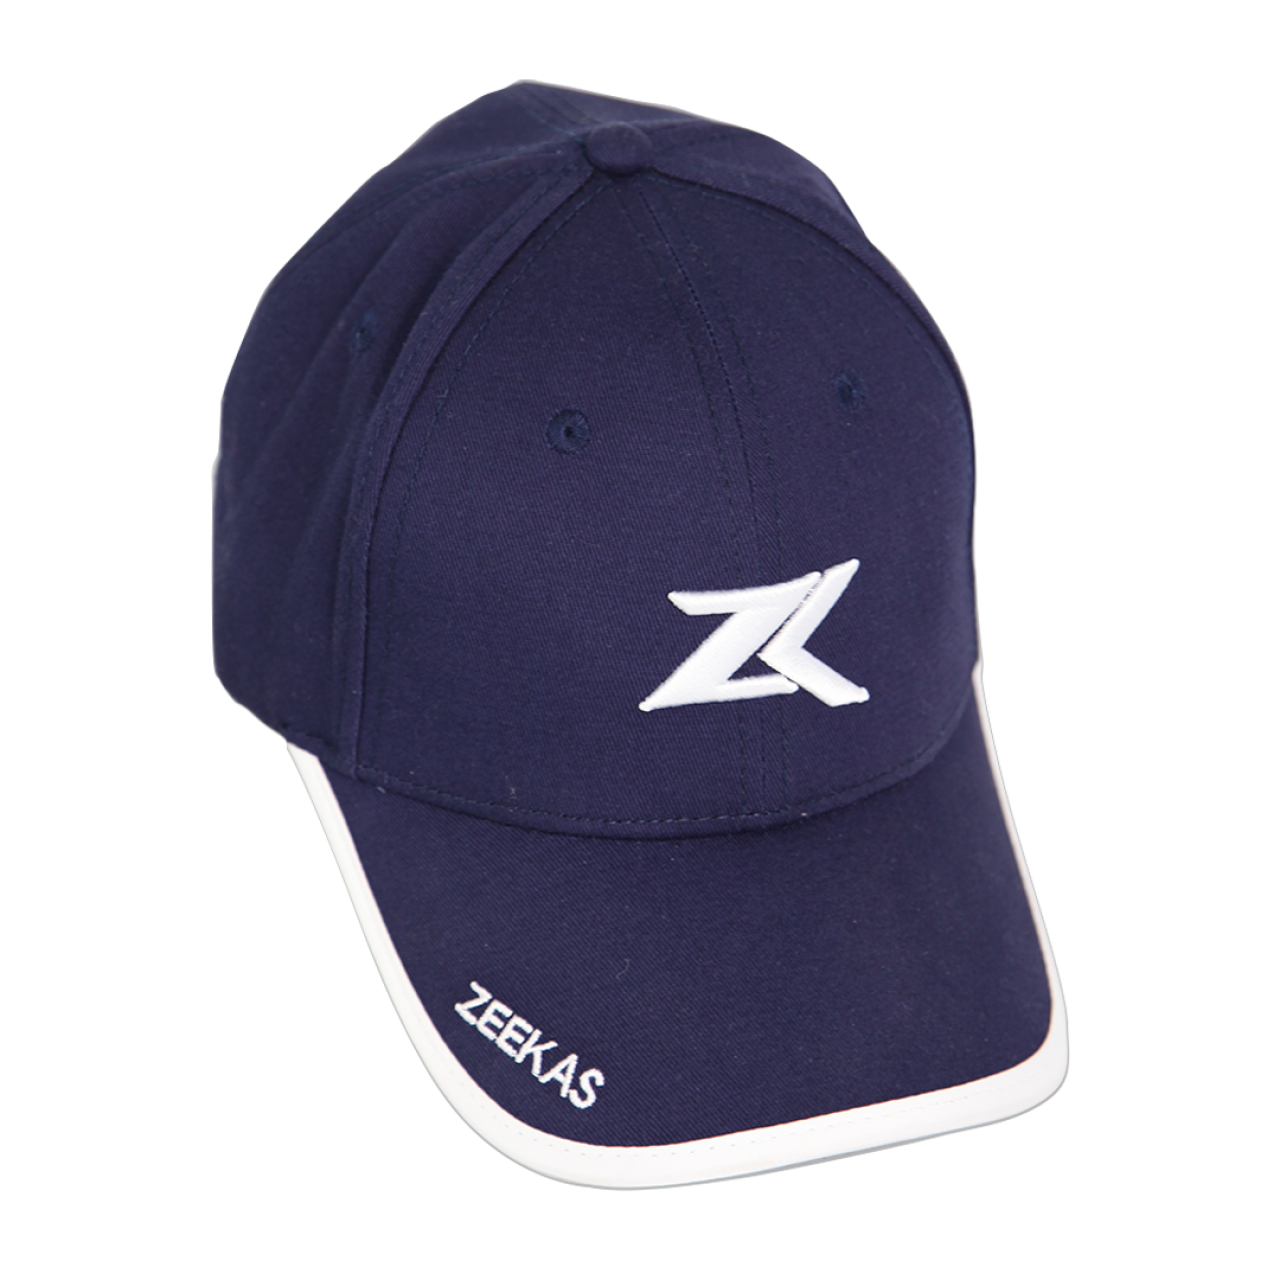 Zeekas ZK Navy Blue Baseball Cap with Brand Embroidery Hat For Men and Women